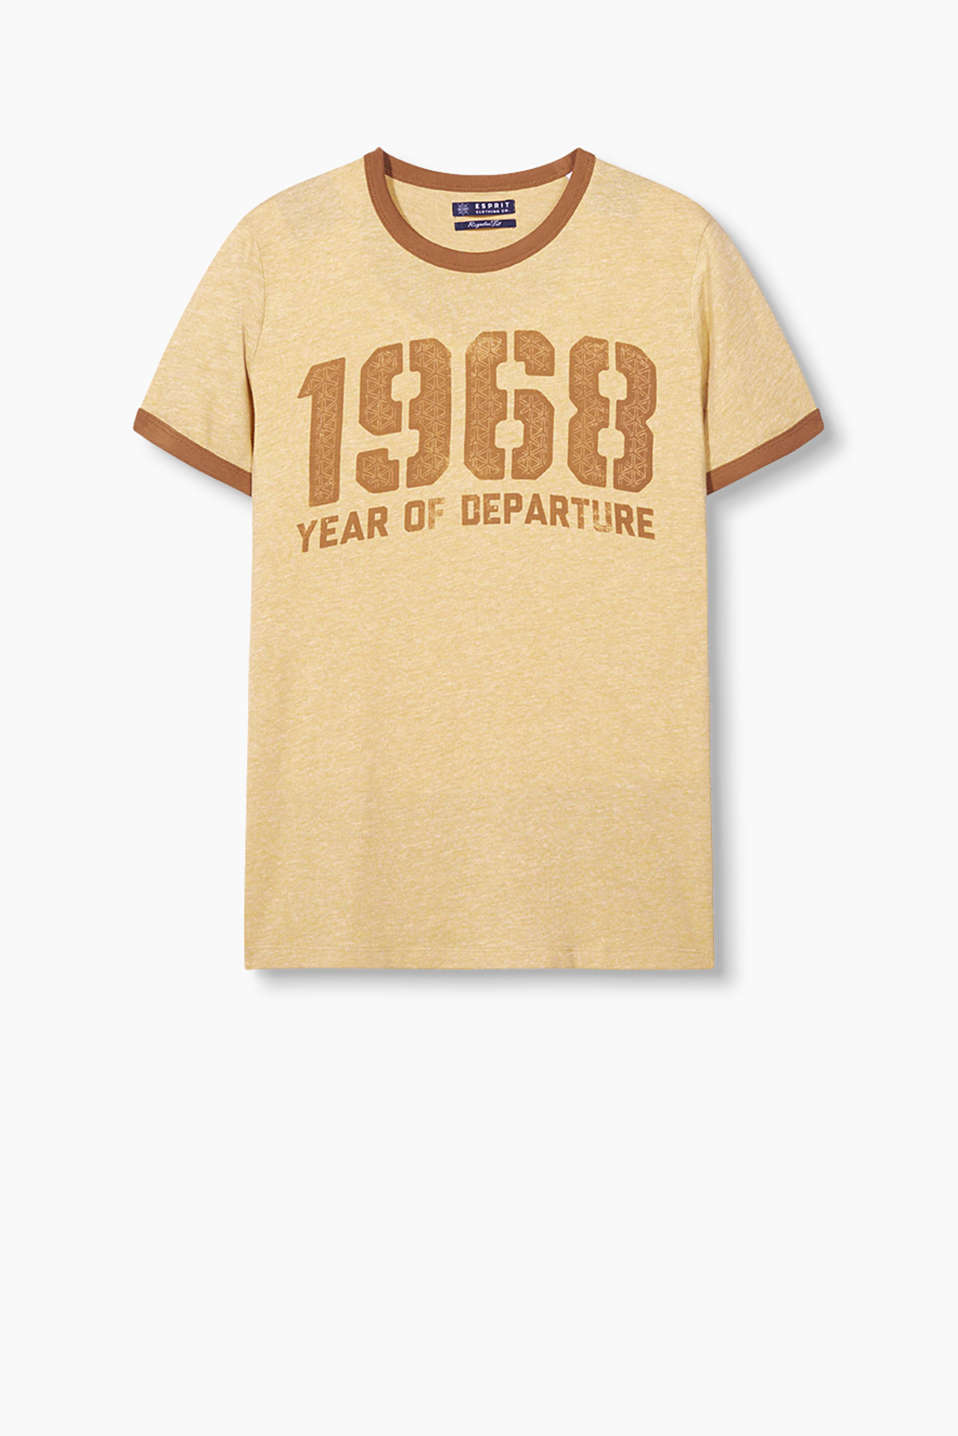 In a retro look: T-shirt with colour-contrasting edges and a print, made of soft blended cotton